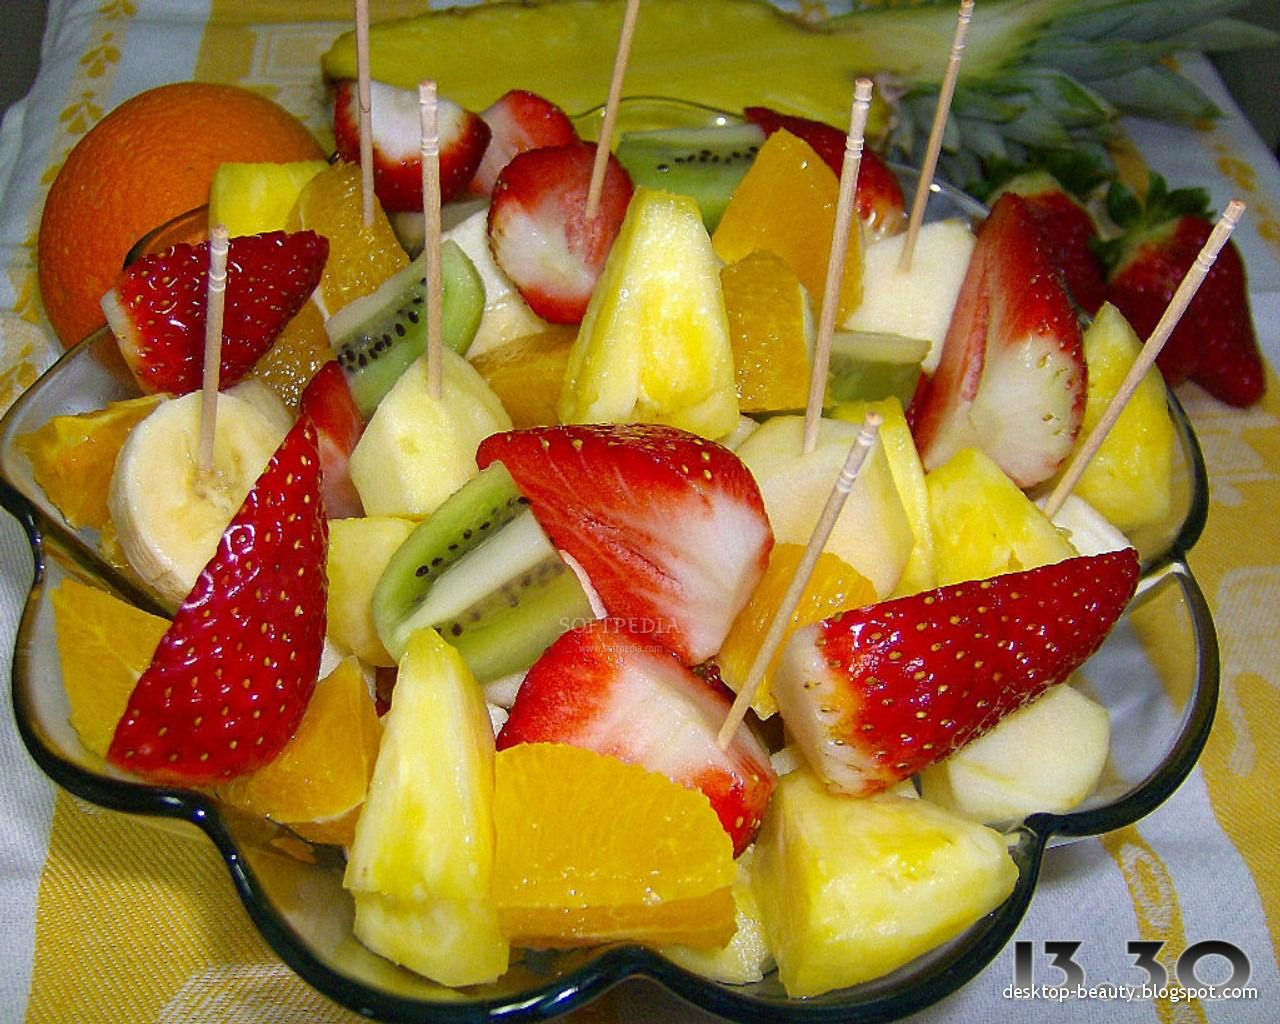 For your Desktop:::...: Fruits And Their Benefits | Fruits ...